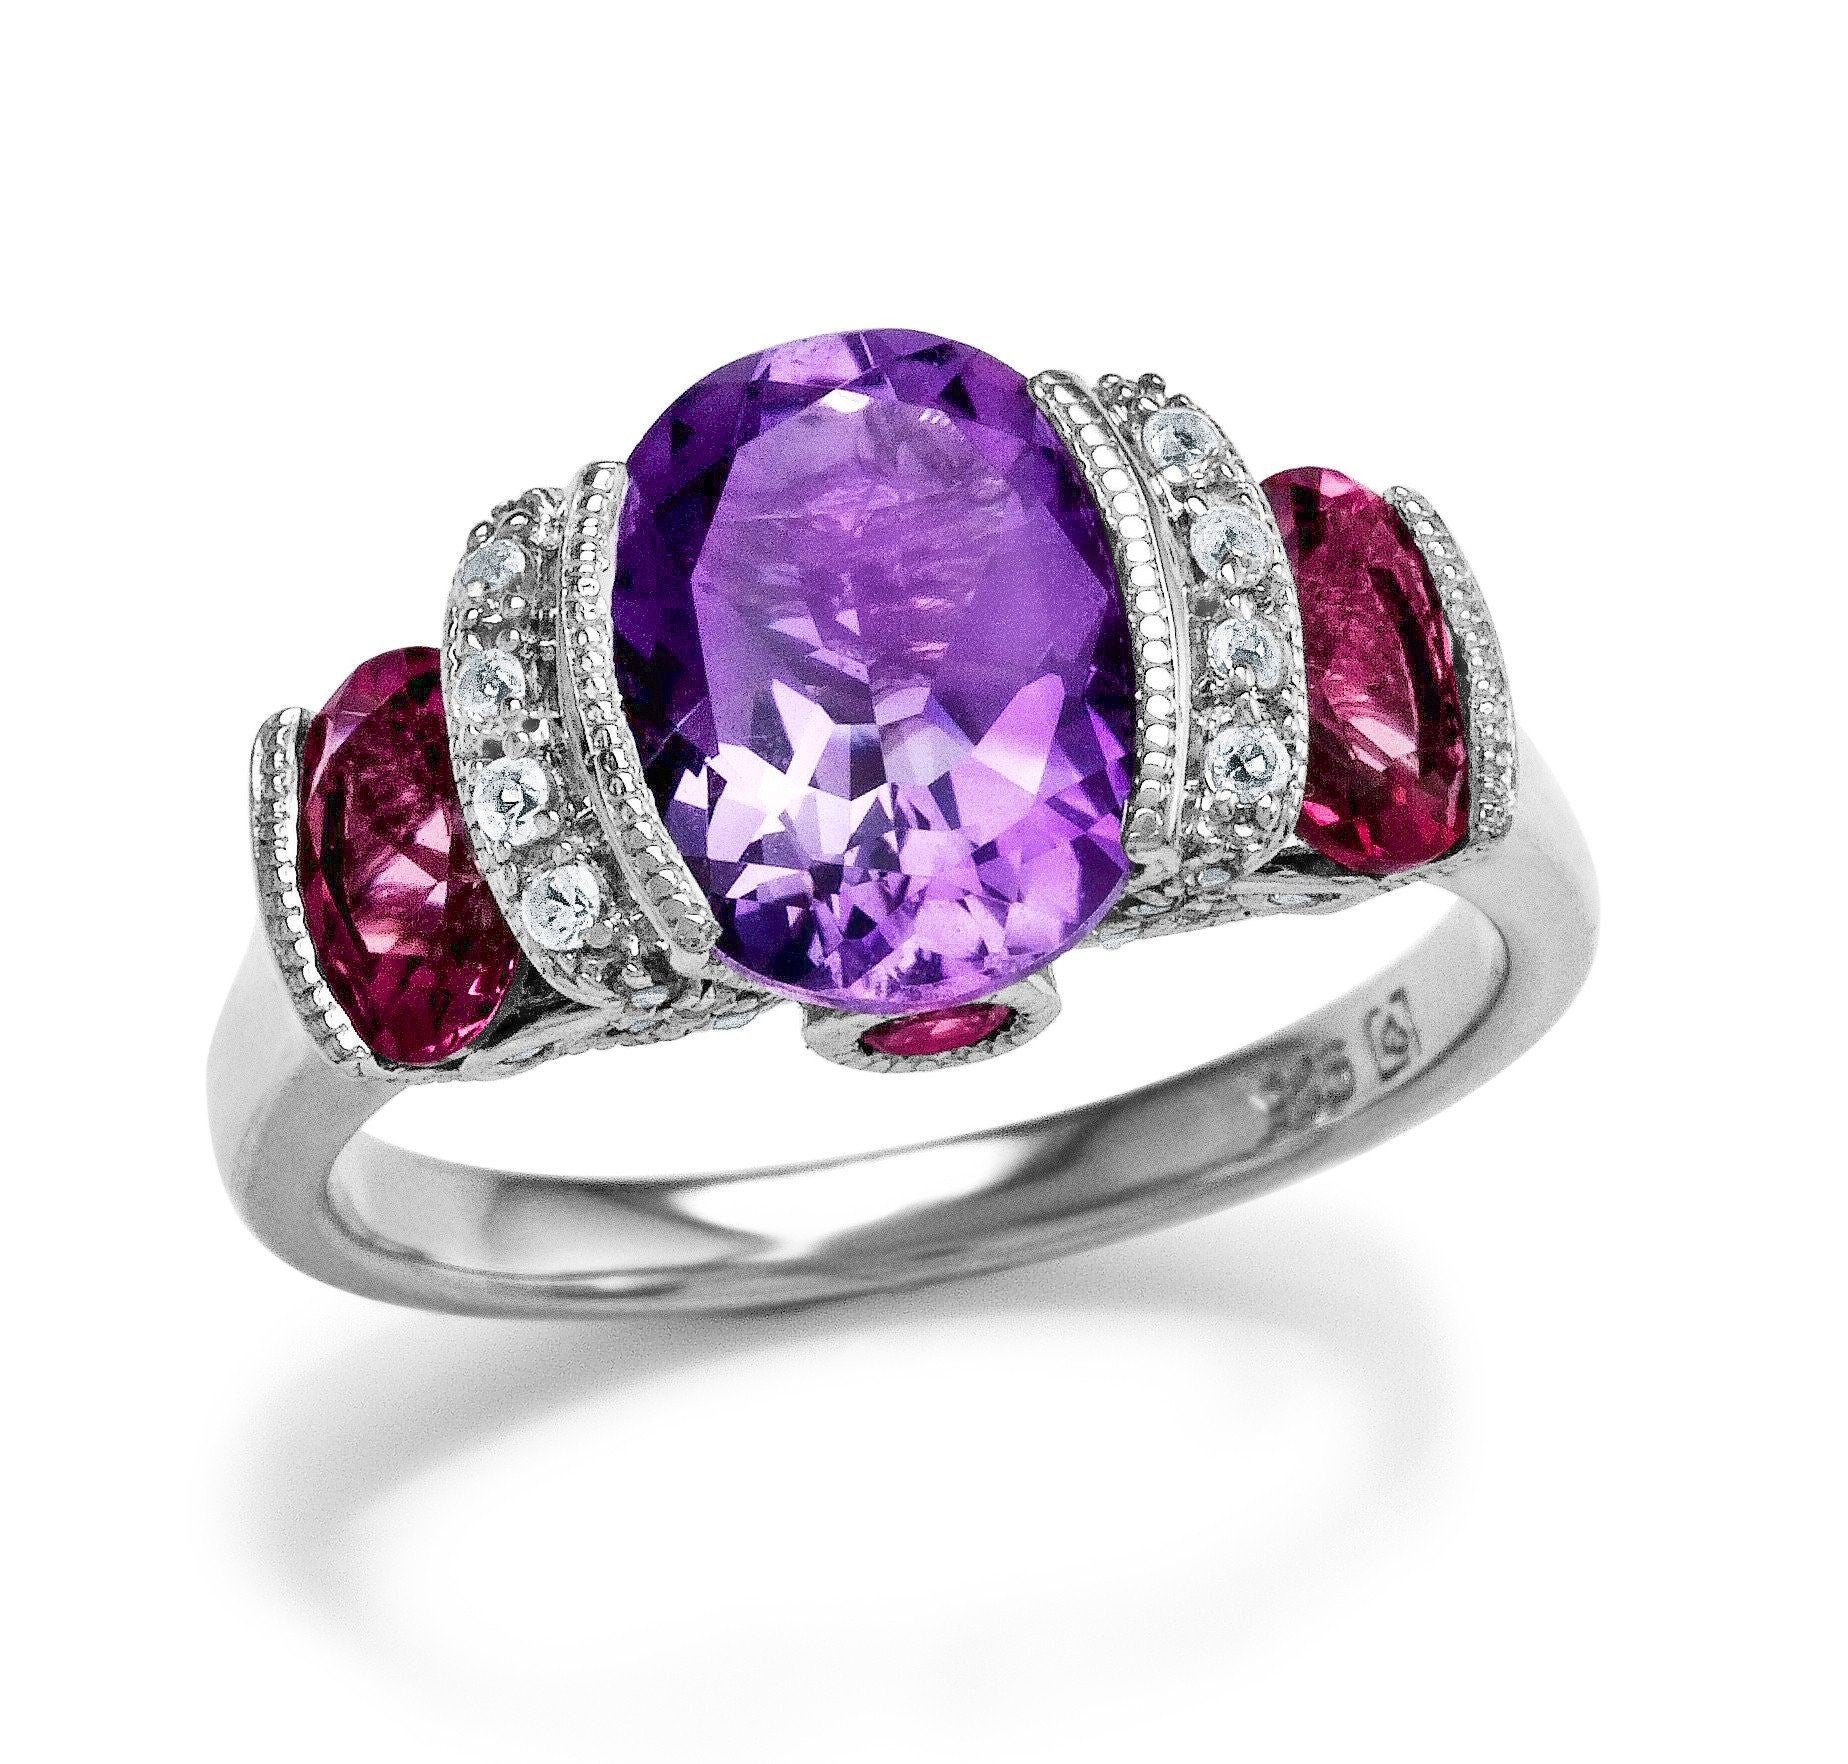 3.50 Carat Genuine Amethyst & Pink Tourmaline & Created White Sapphire Sterling Silver Ring